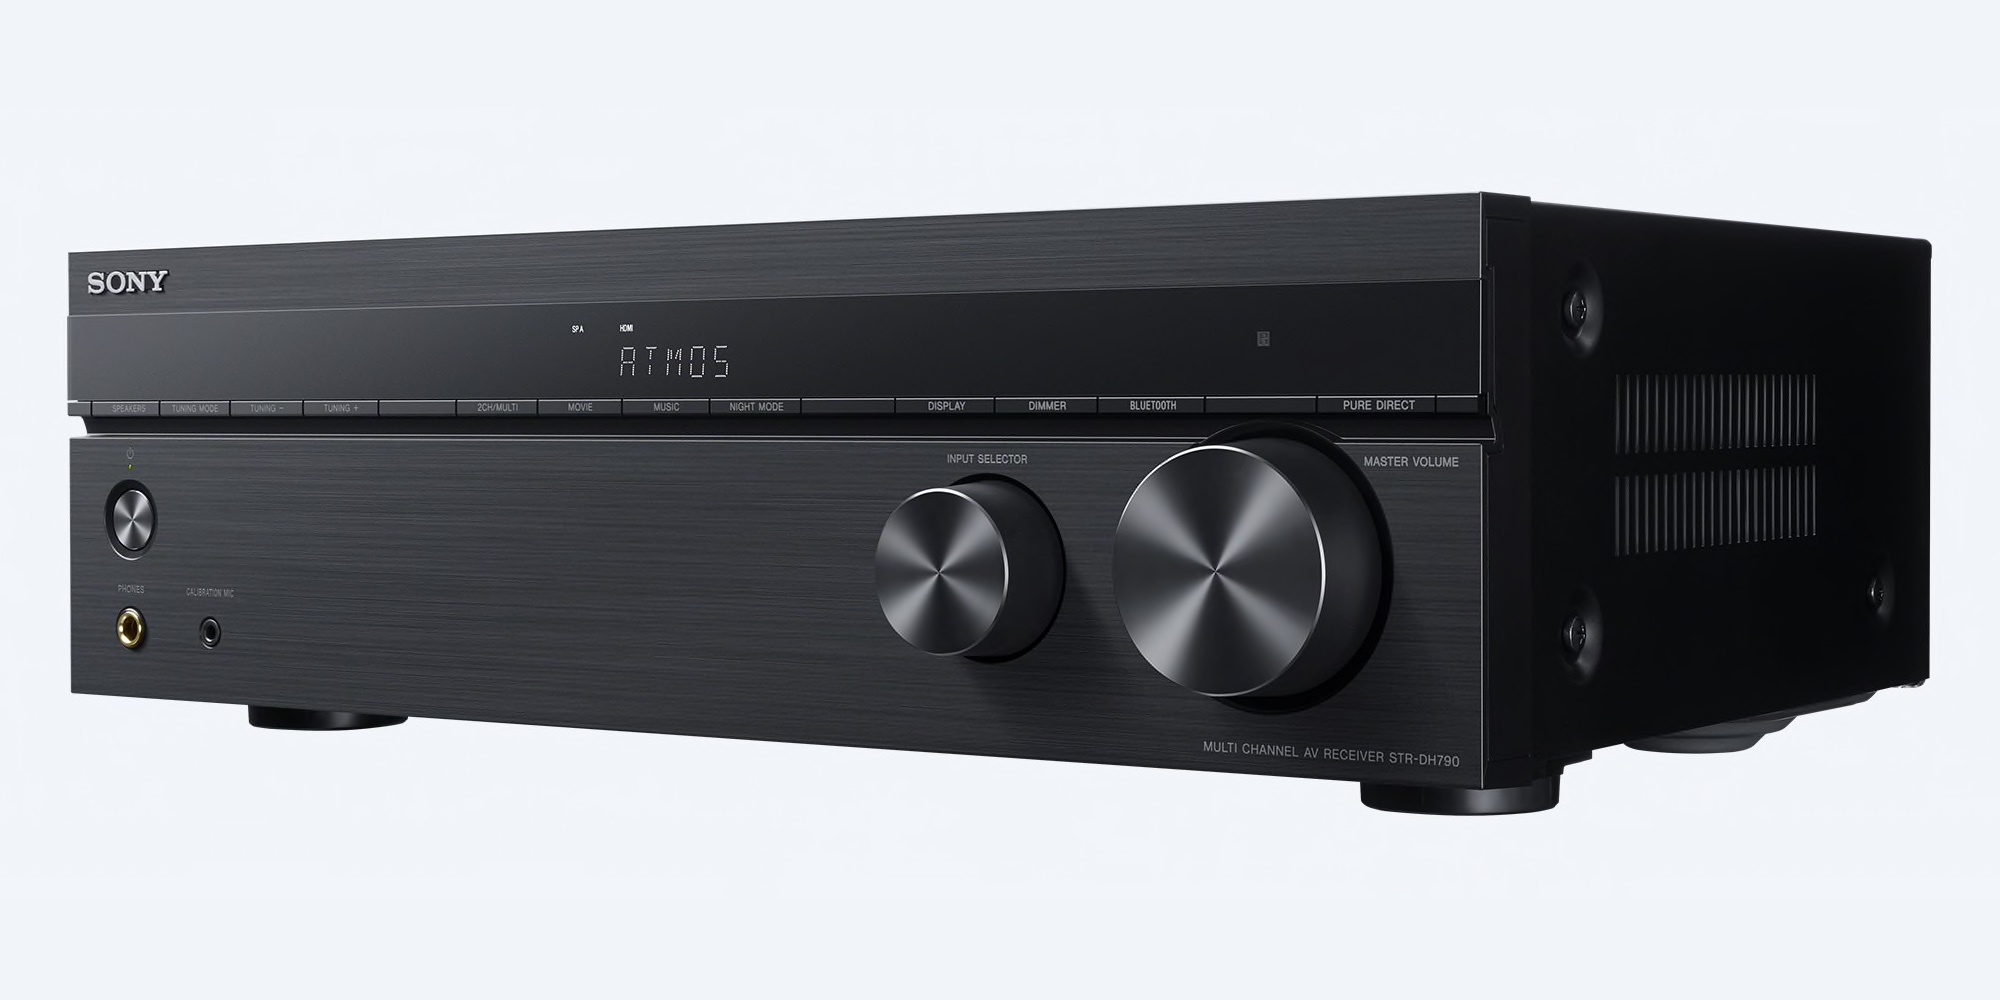 Sony's 7.2-Ch. Home Theater Receiver touts four HDMI ports + Dolby Atmos at $230 (Reg. $300)